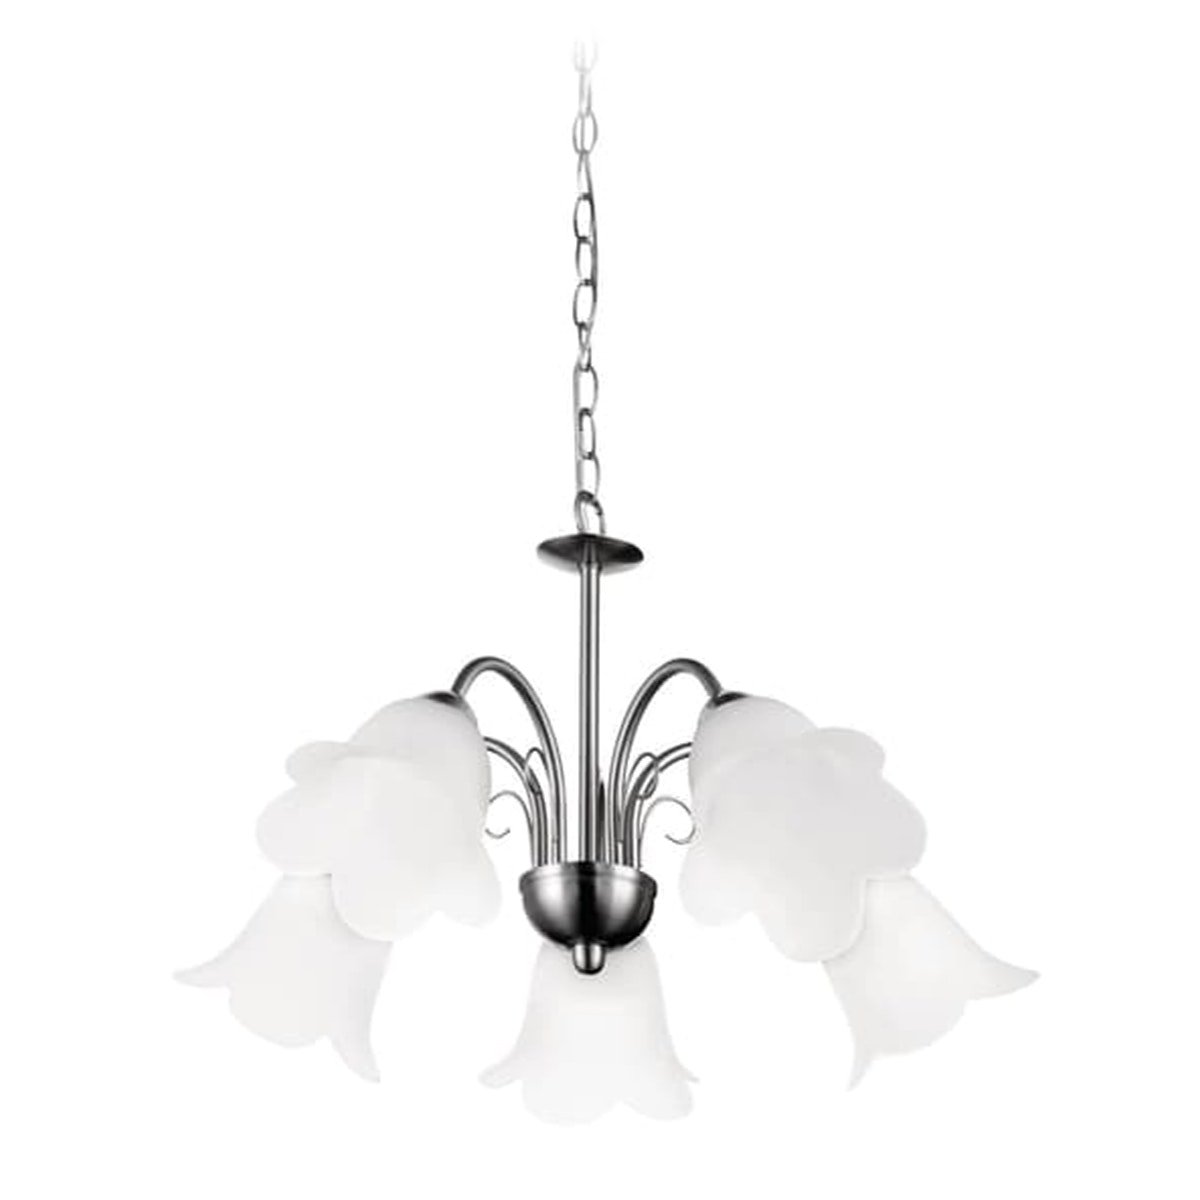 Philips Suspension Light Chandelier (Nickel) Matt Chrome 5x40W 36995